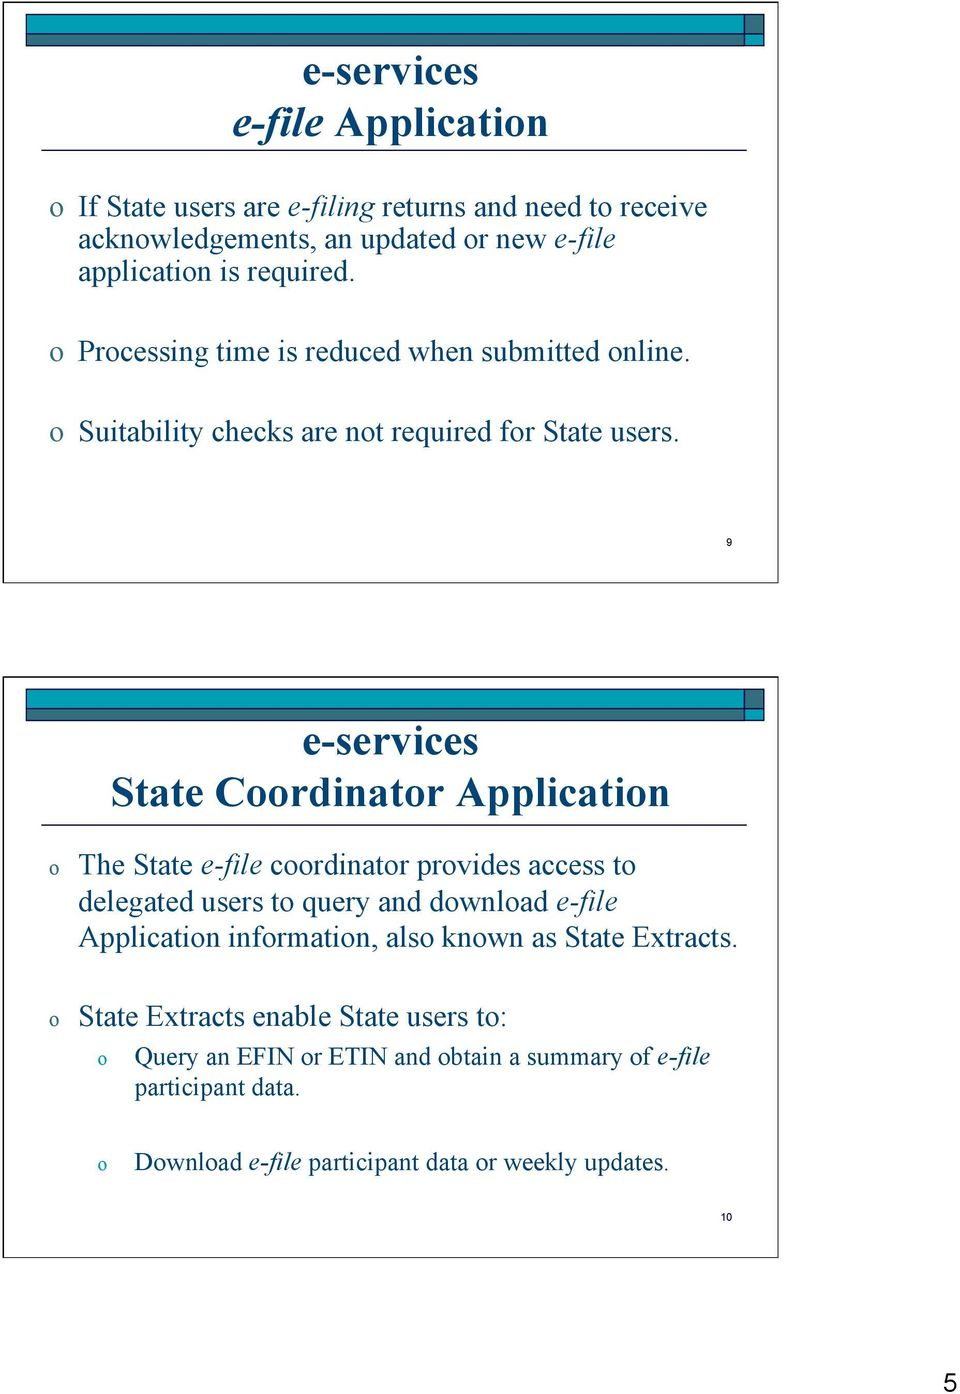 9 e-services State Crdinatr Applicatin The State e-file crdinatr prvides access t delegated users t query and dwnlad e-file Applicatin